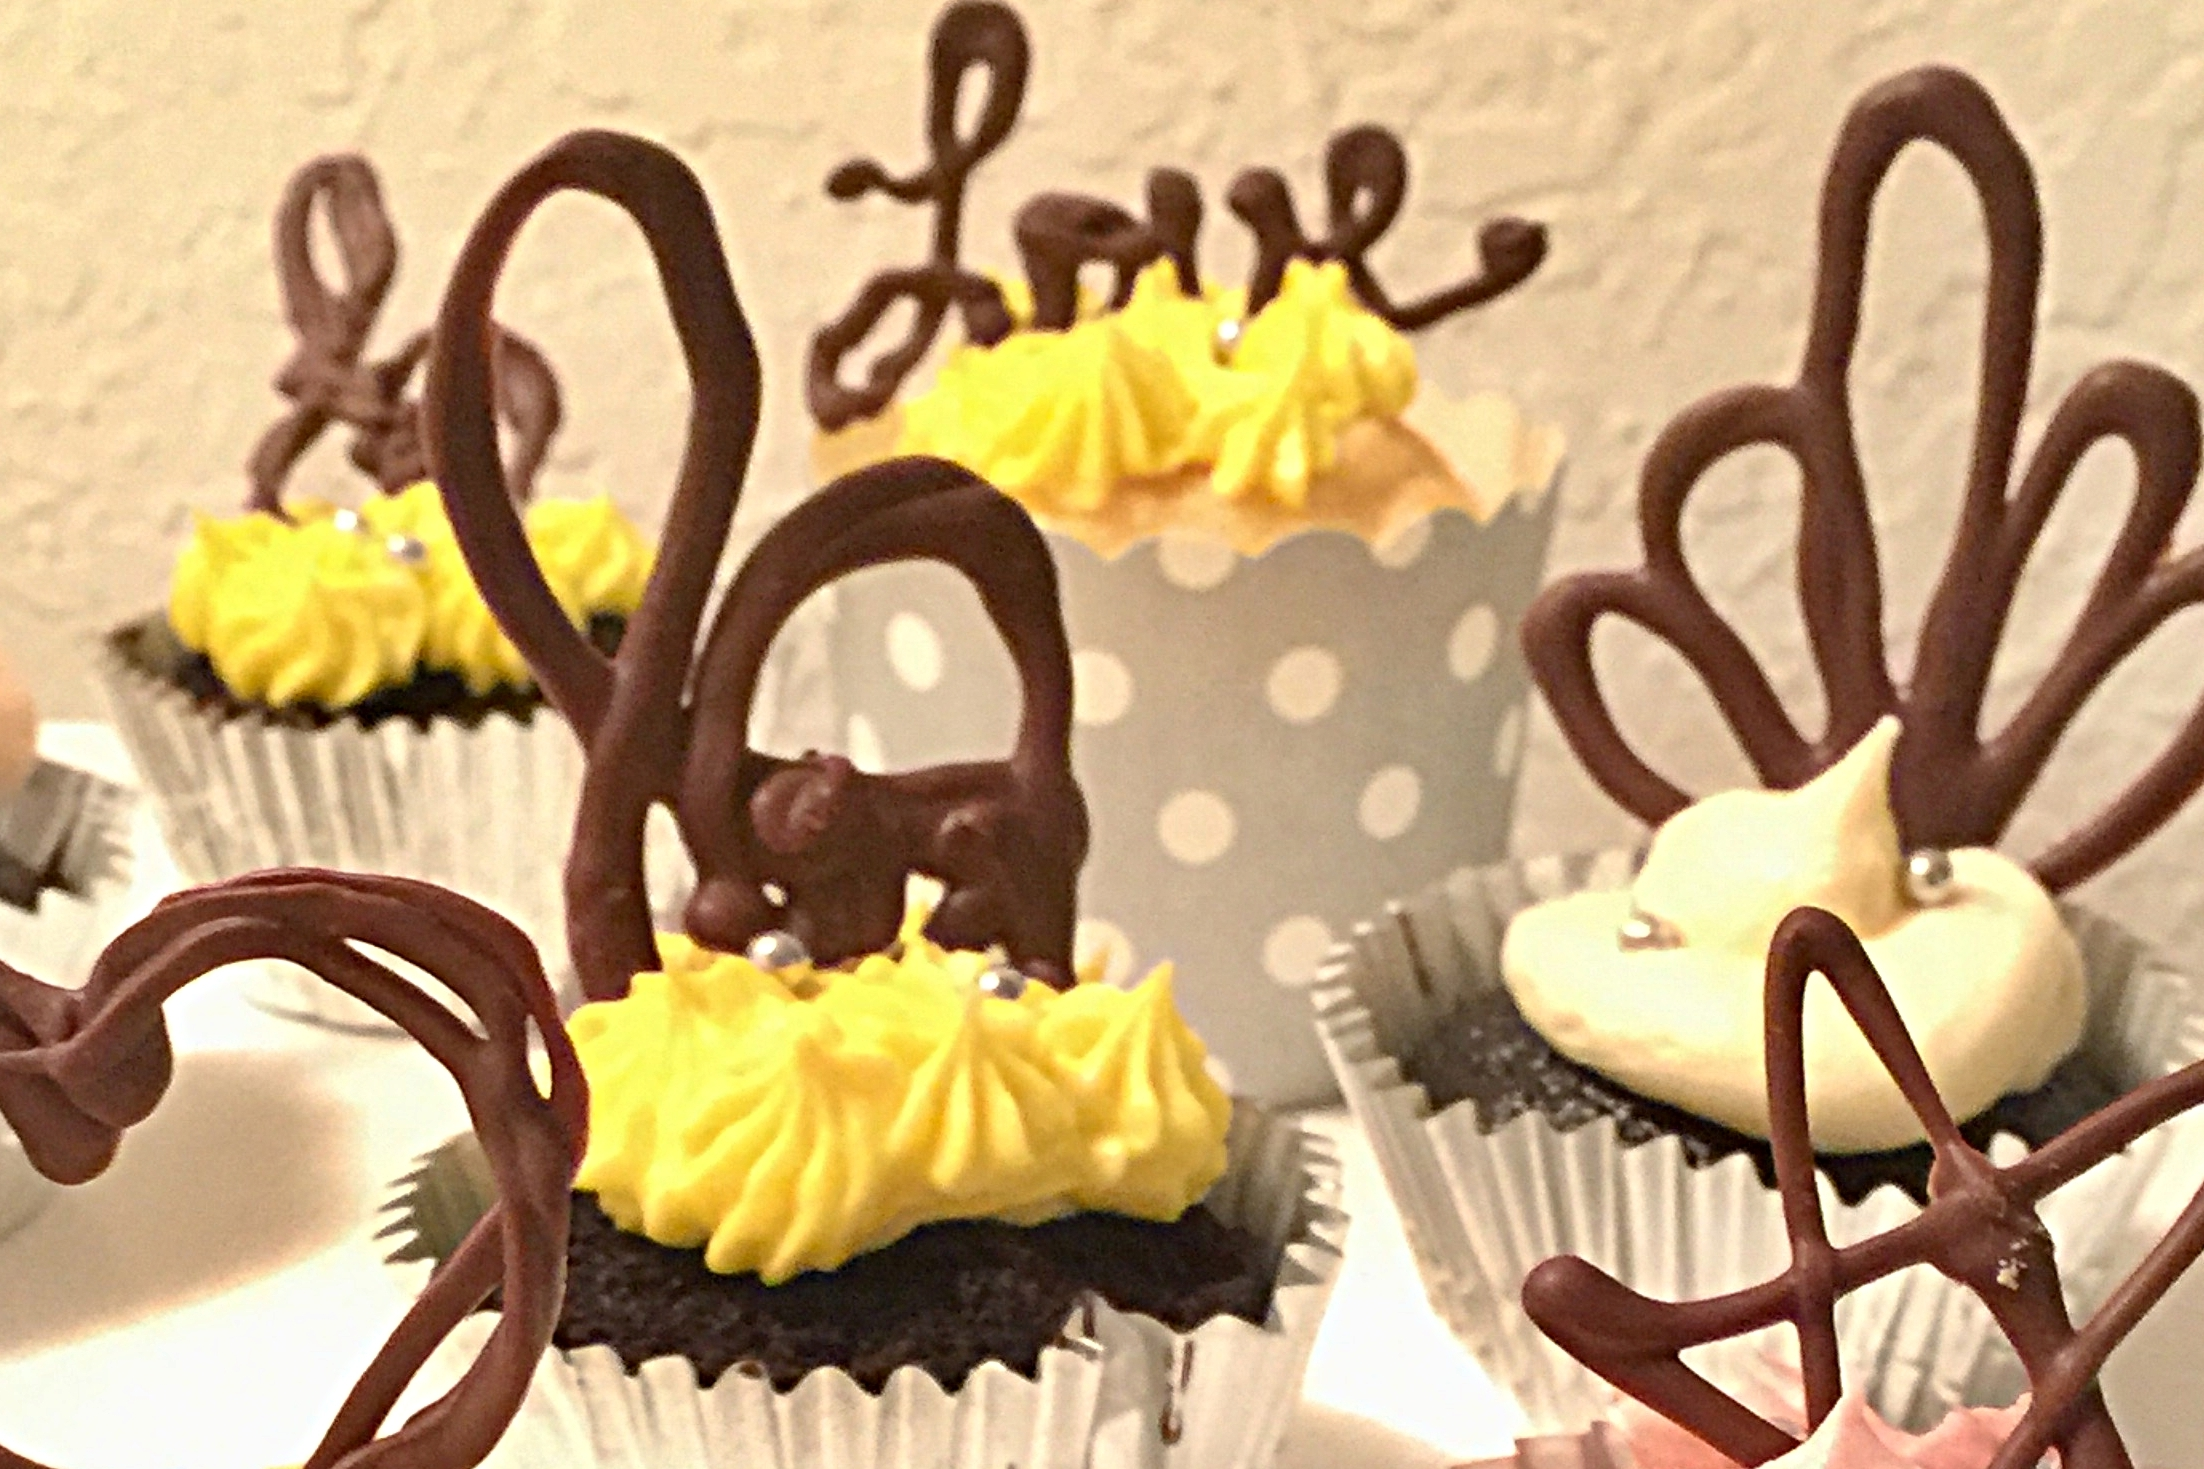 Party Cupcakes (min. 12)  $4.00